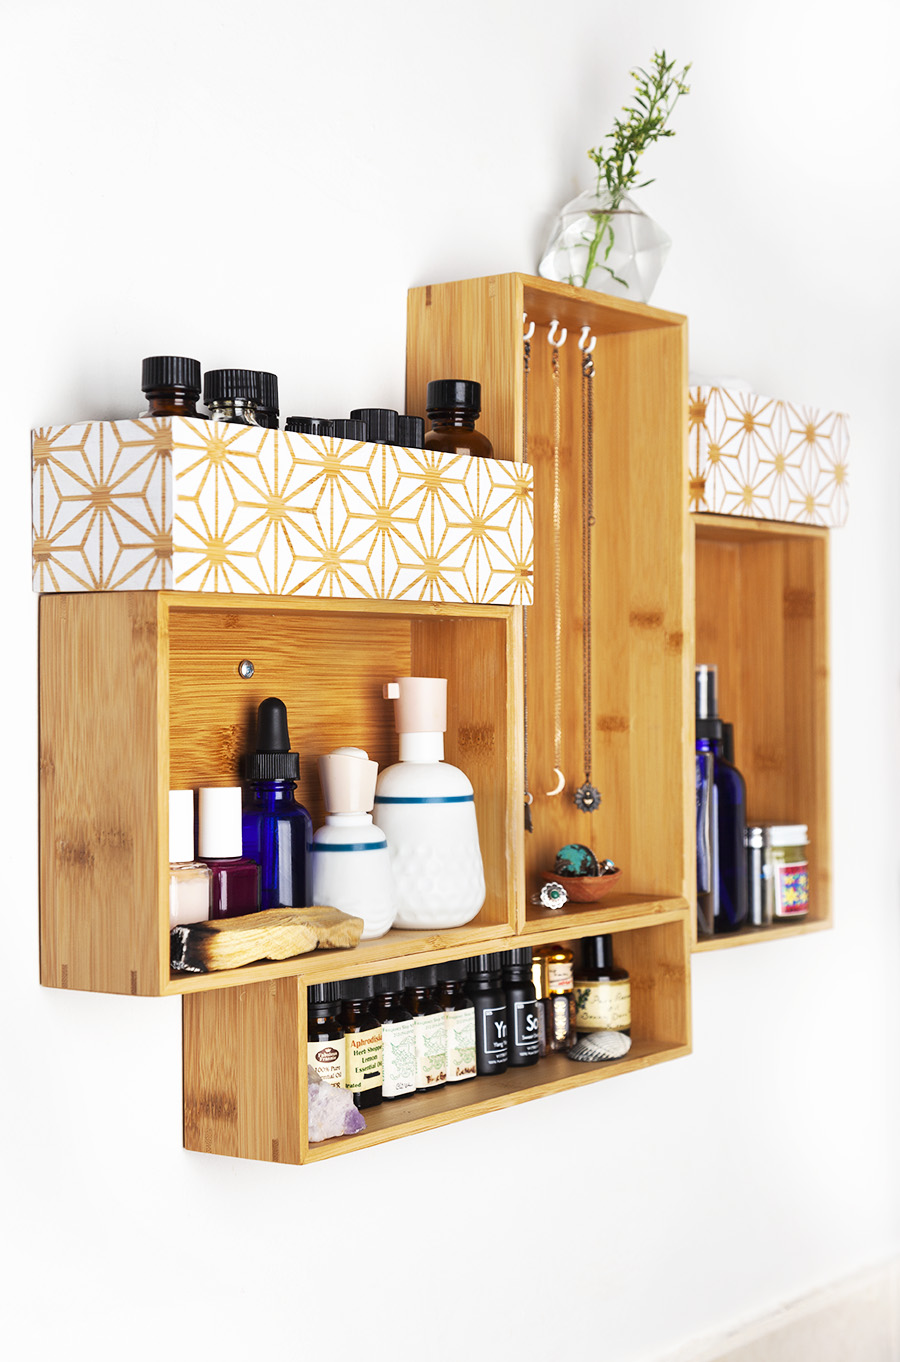 Wall Shelf Design Diy Wood Drawer Wall Shelf Design Sponge